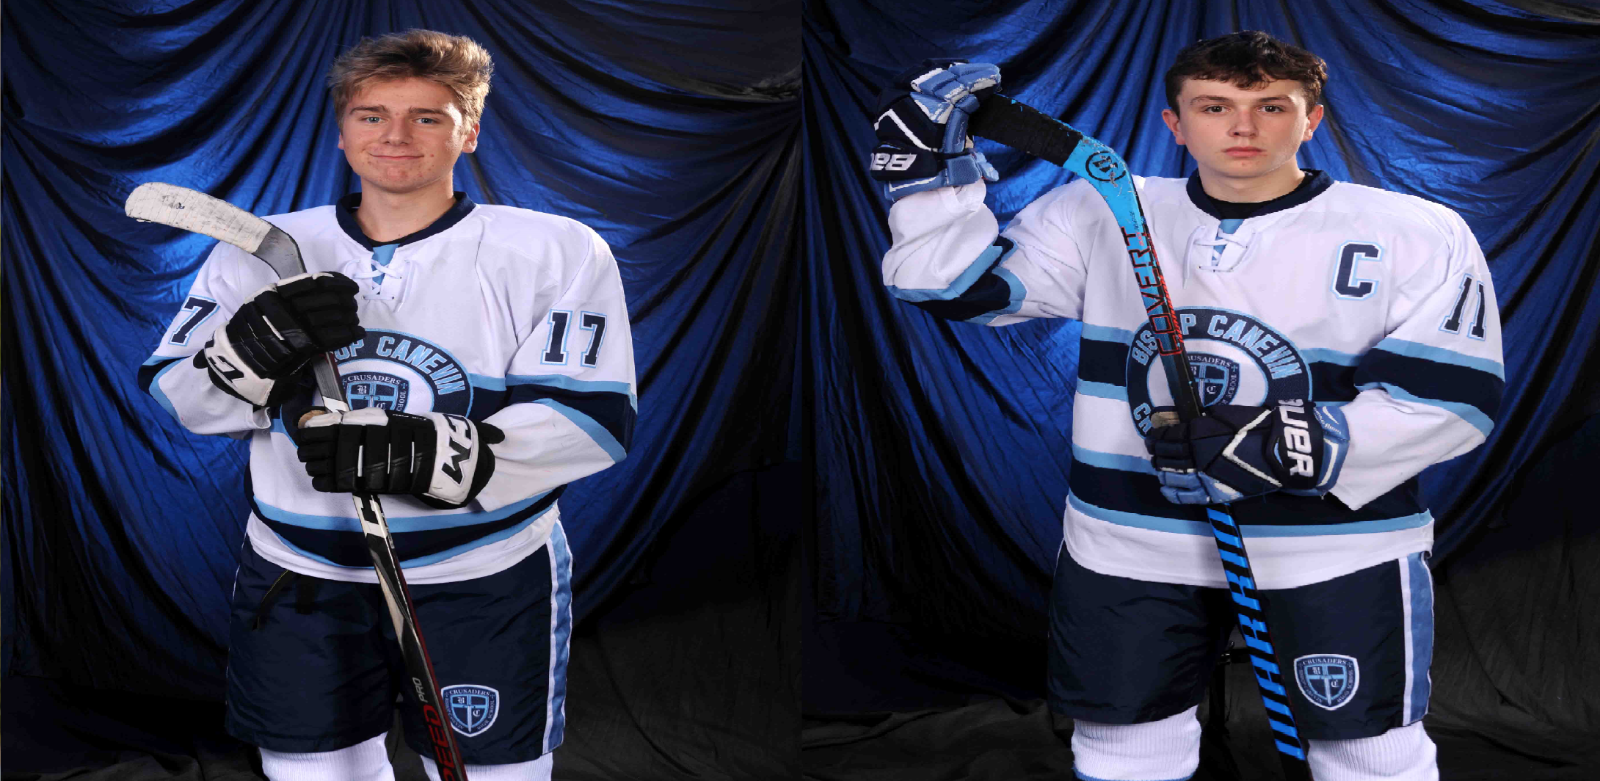 Evans and Ropchock Selected to 2020 PIHL All-Star Game Roster